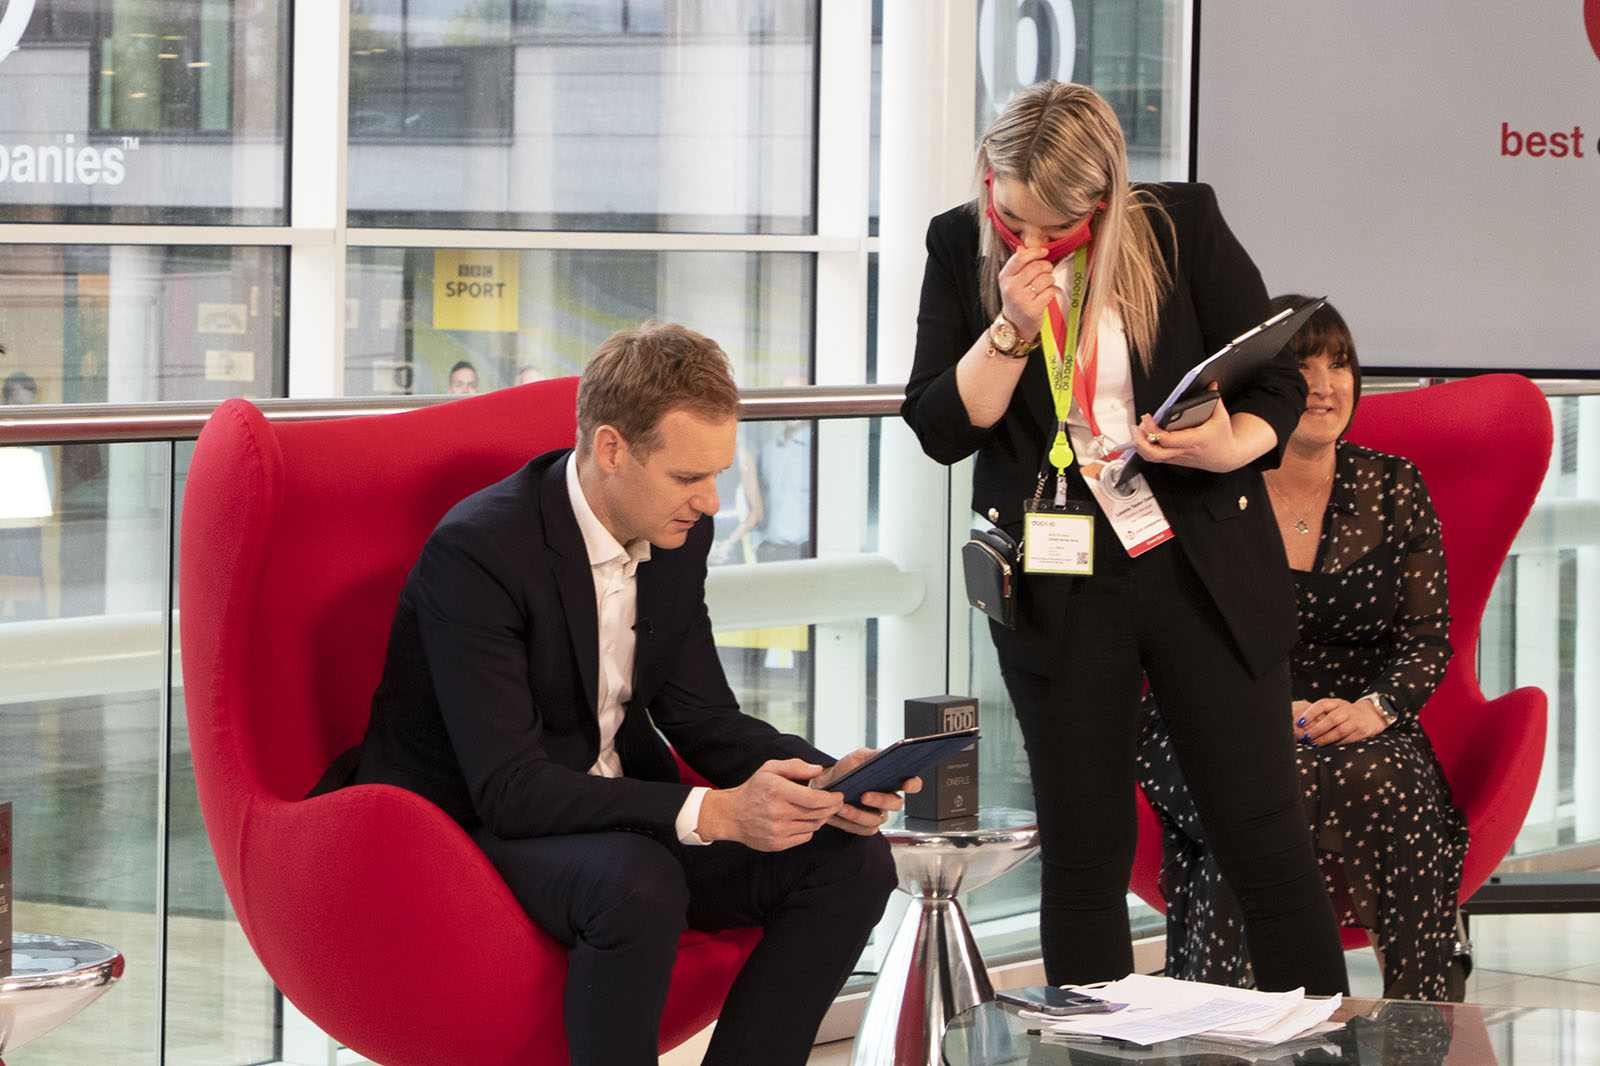 TV Presenter Dan Walker with CEO and co-founder of Onefile Susanna Lawson and a member of the Best Companies Live Team on set